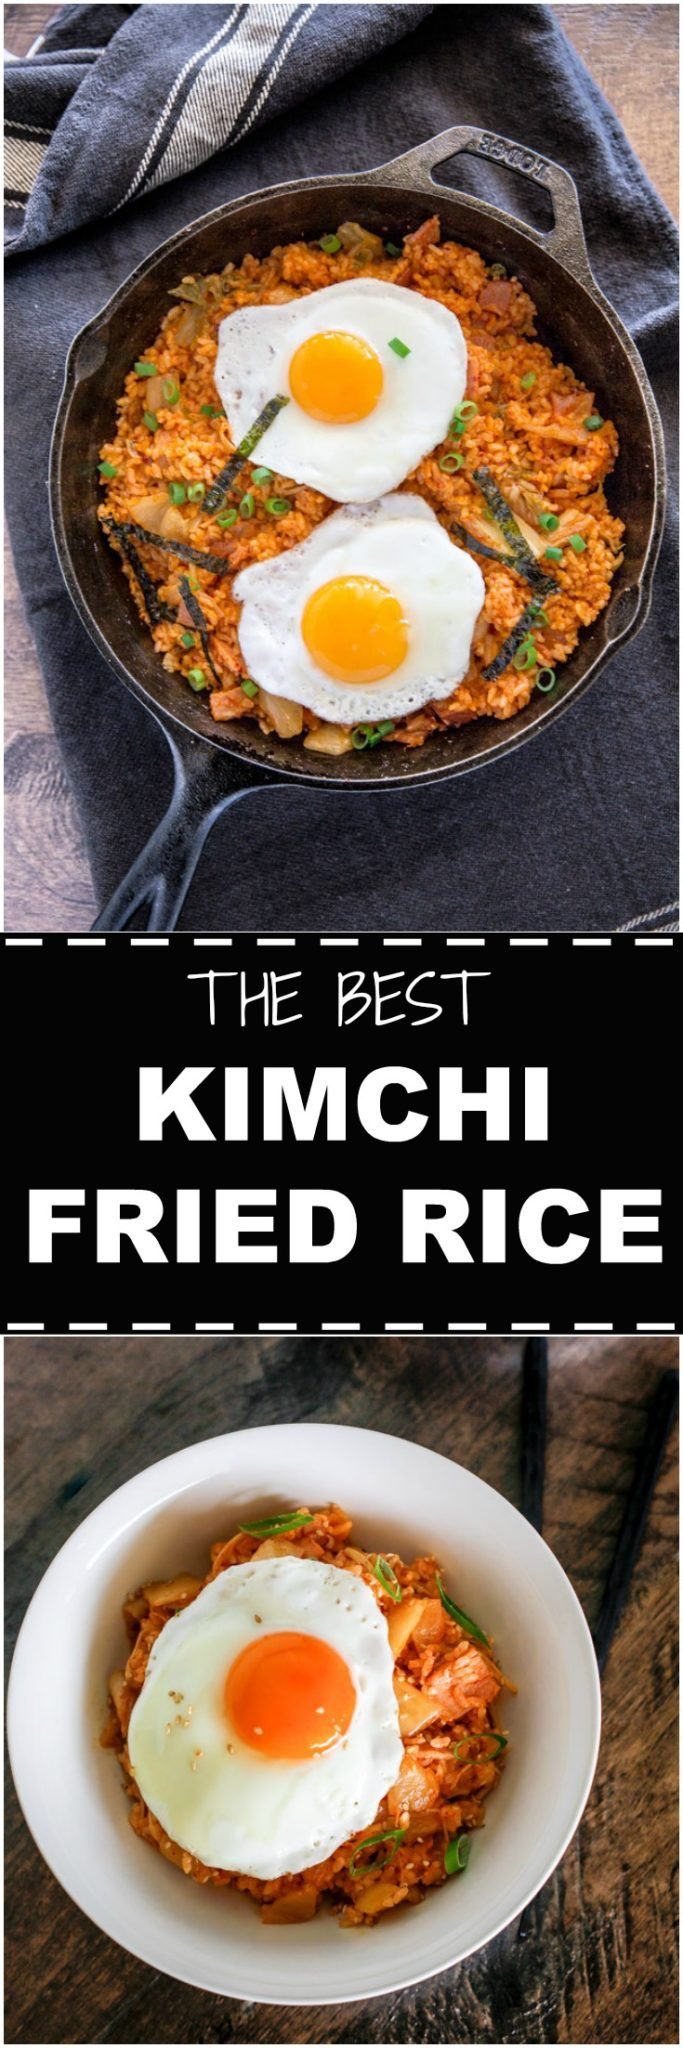 Easy kimchi fried rice recipe. Kimchi and rice is stir fried with smoky bacon and spicy kimchi juice. It's simply delicious! | MyKoreanKitchen.com via @mykoreankitchen